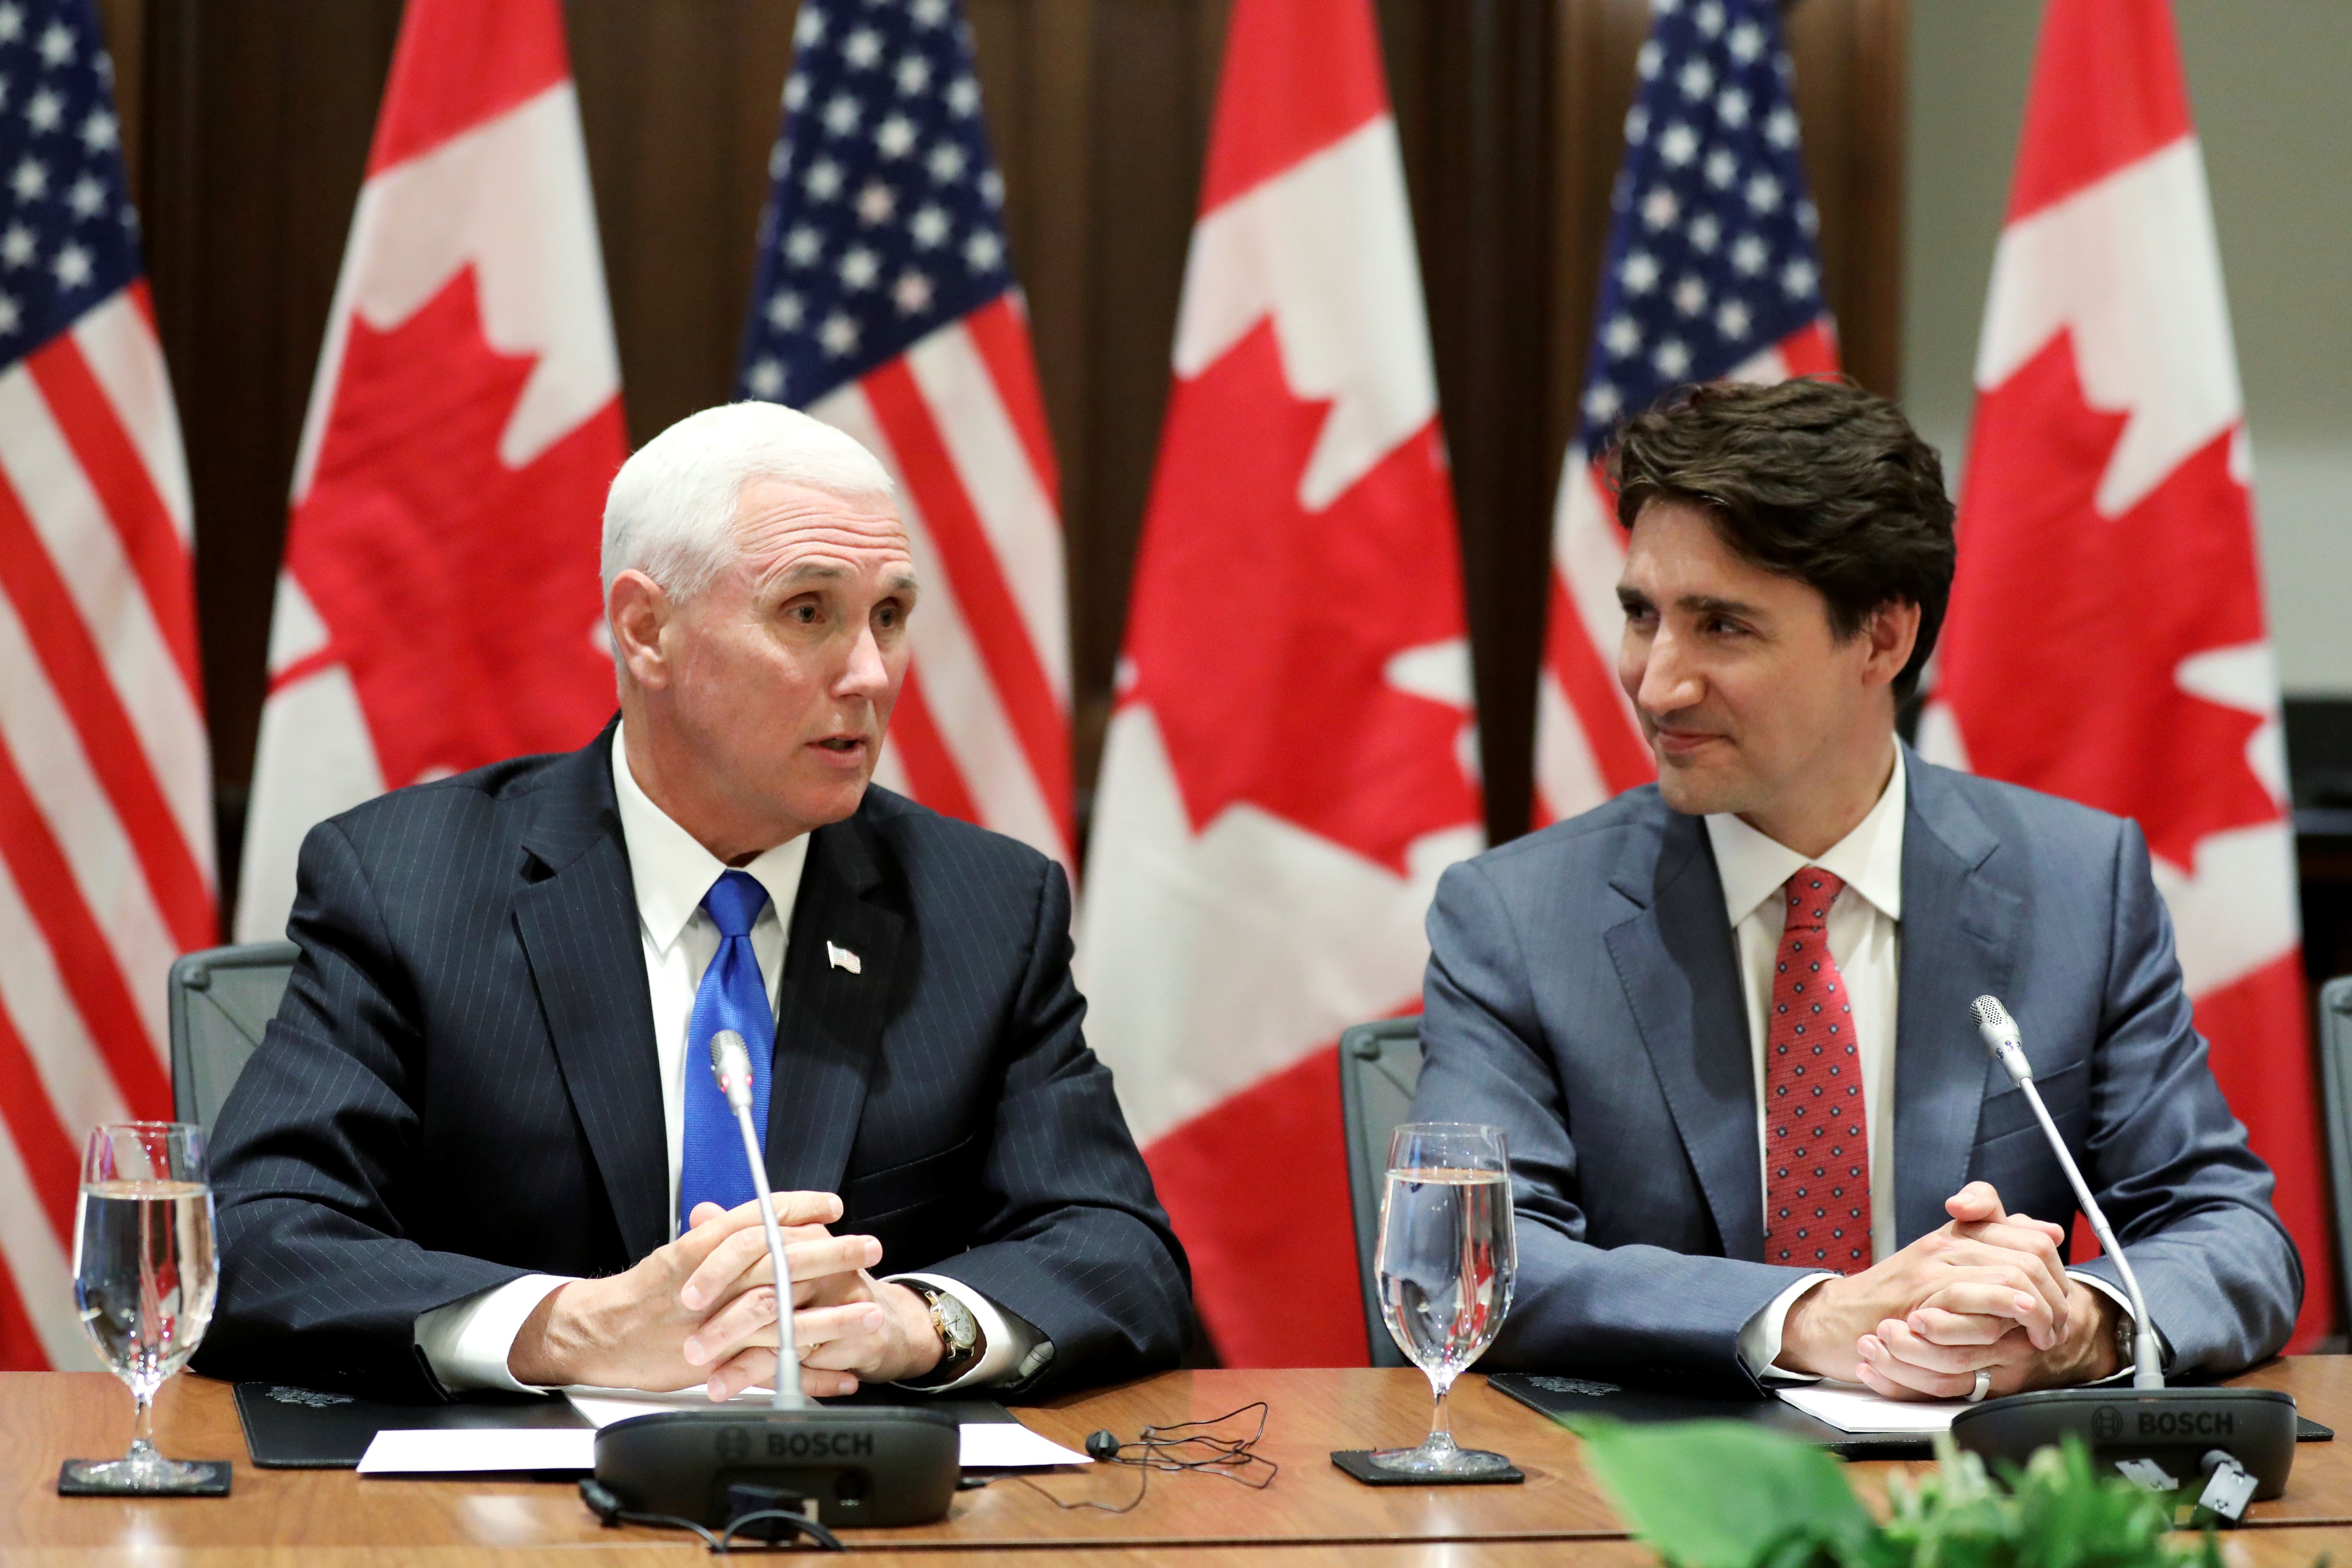 Canada's Prime Minister Justin Trudeau and U.S. Vice President Mike Pence shake hands during a welcoming ceremony on Parliament Hill in Ottawa, Ontario, Canada, May 30, 2019. REUTERS/Chris Wattie